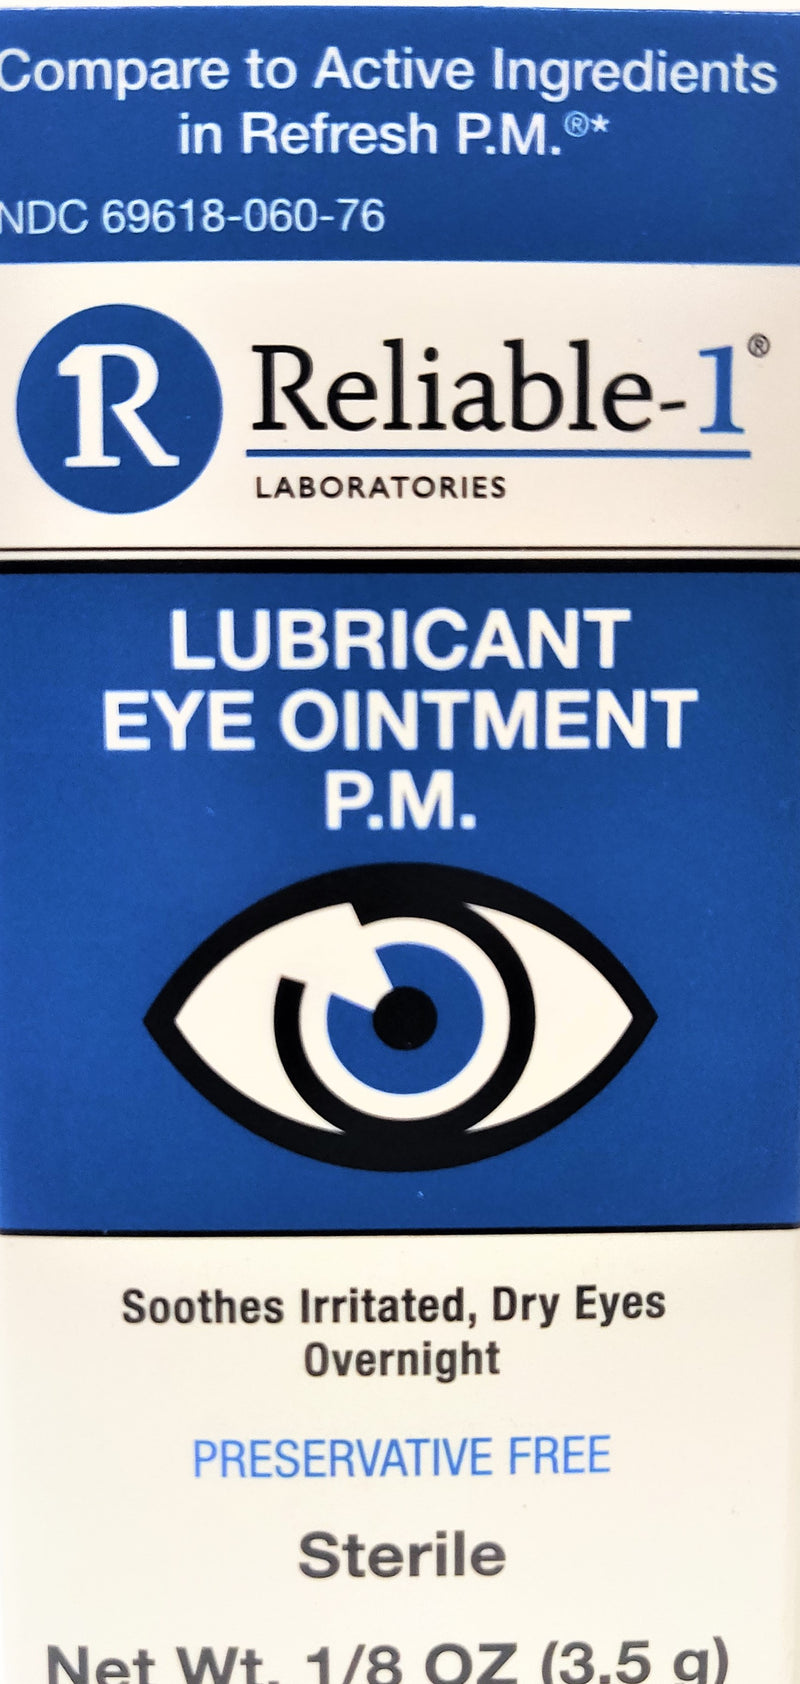 Reliable-1 Laboratories Lubricant Eye Ointment PM 1/8 Oz (3.5g) - Soothes Irritated Dry Eyes Overnight - Sterile, Preservative Free